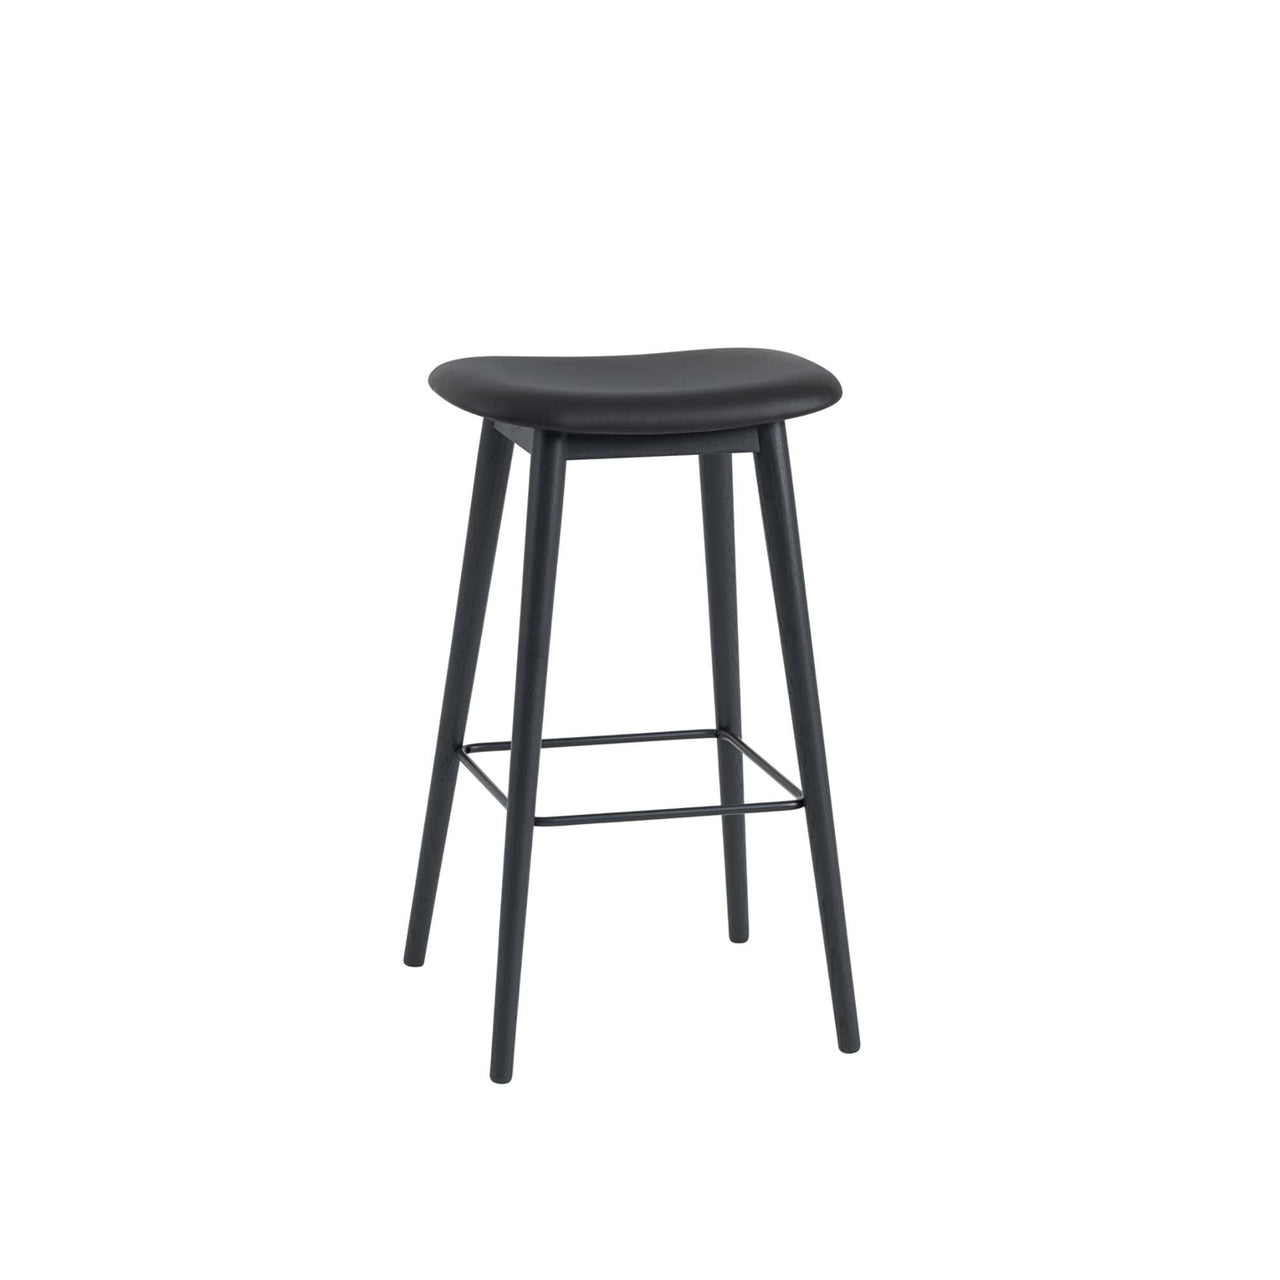 Fiber Bar Stool - Wood Base